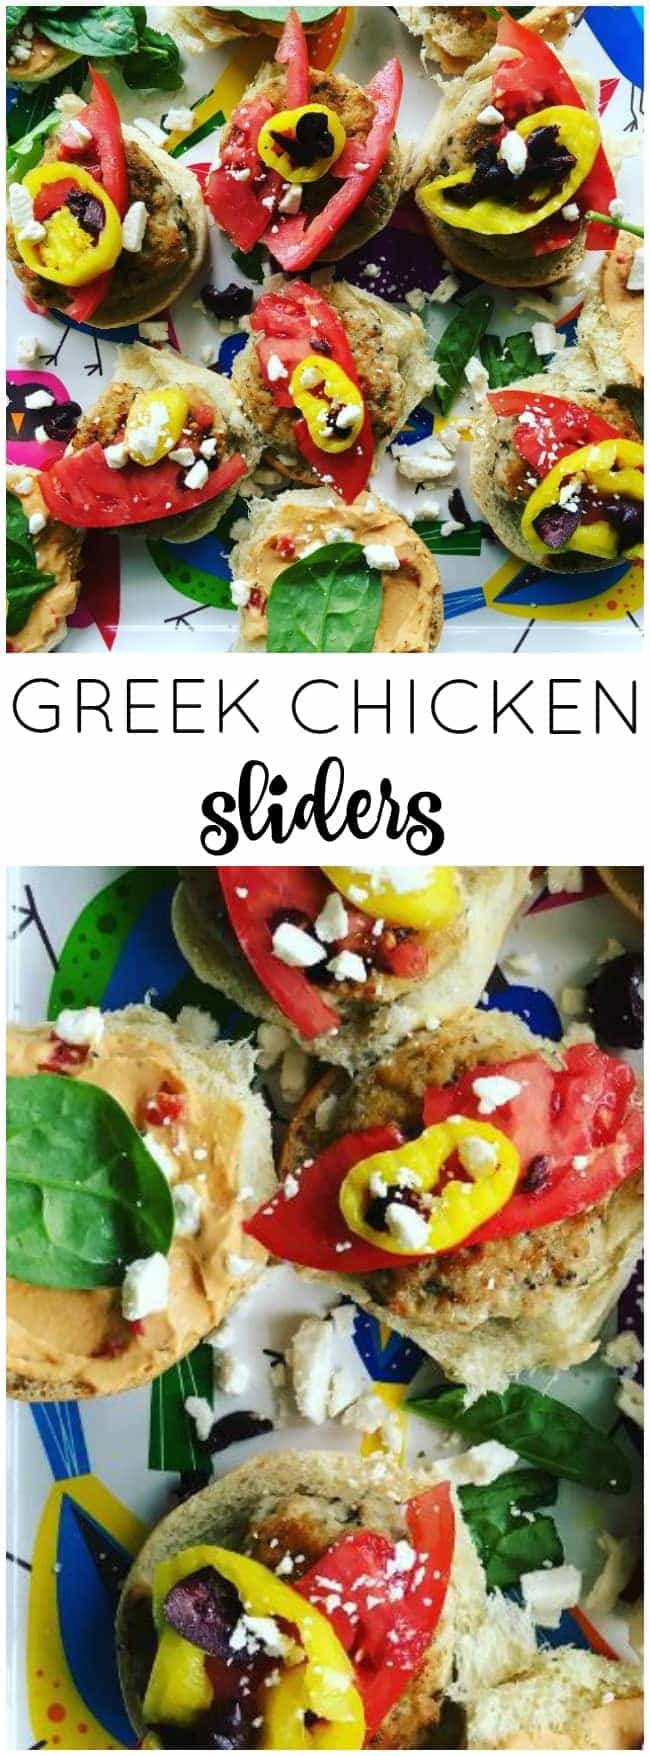 These Easy Greek Chicken Sliders are good for you, loaded with flavor, and are ready to eat in less than 30 minutes.